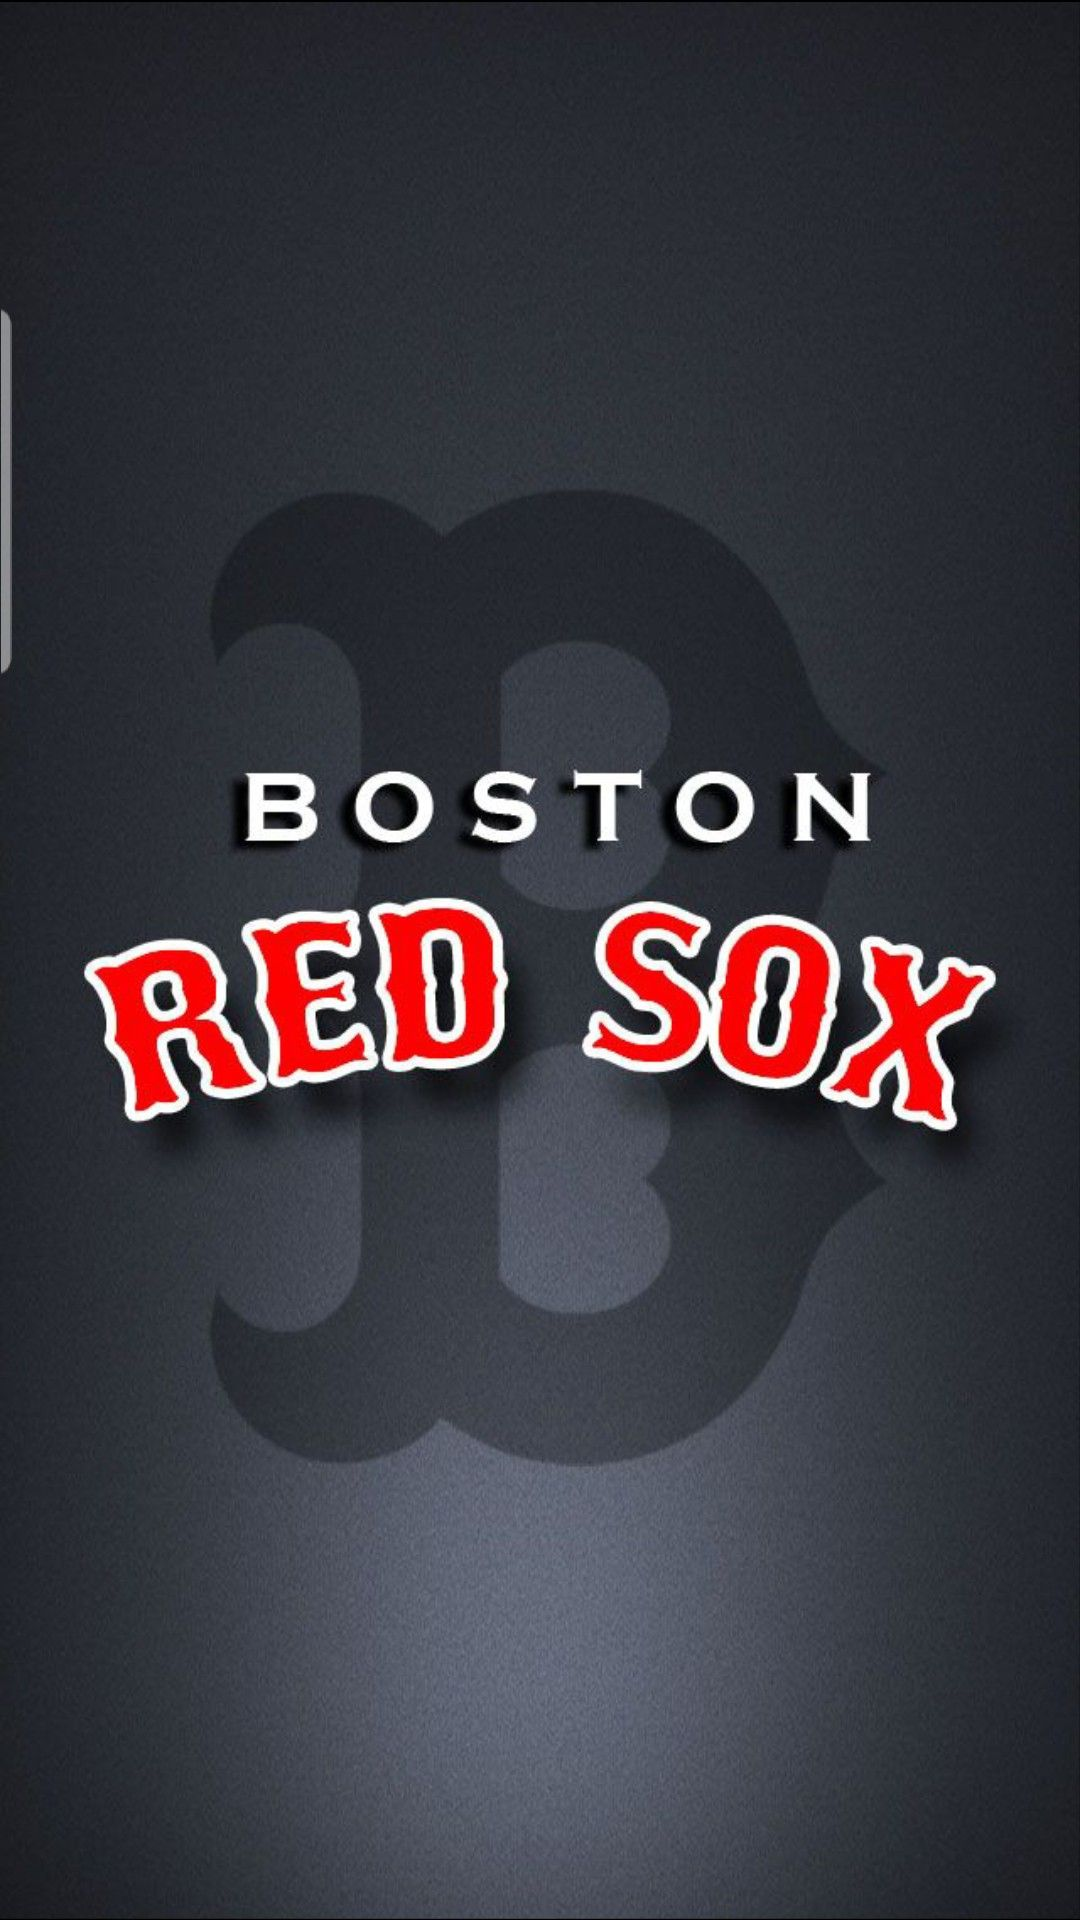 Pin By Archie Douglas On Sportz Wallpaperz Boston Red Sox